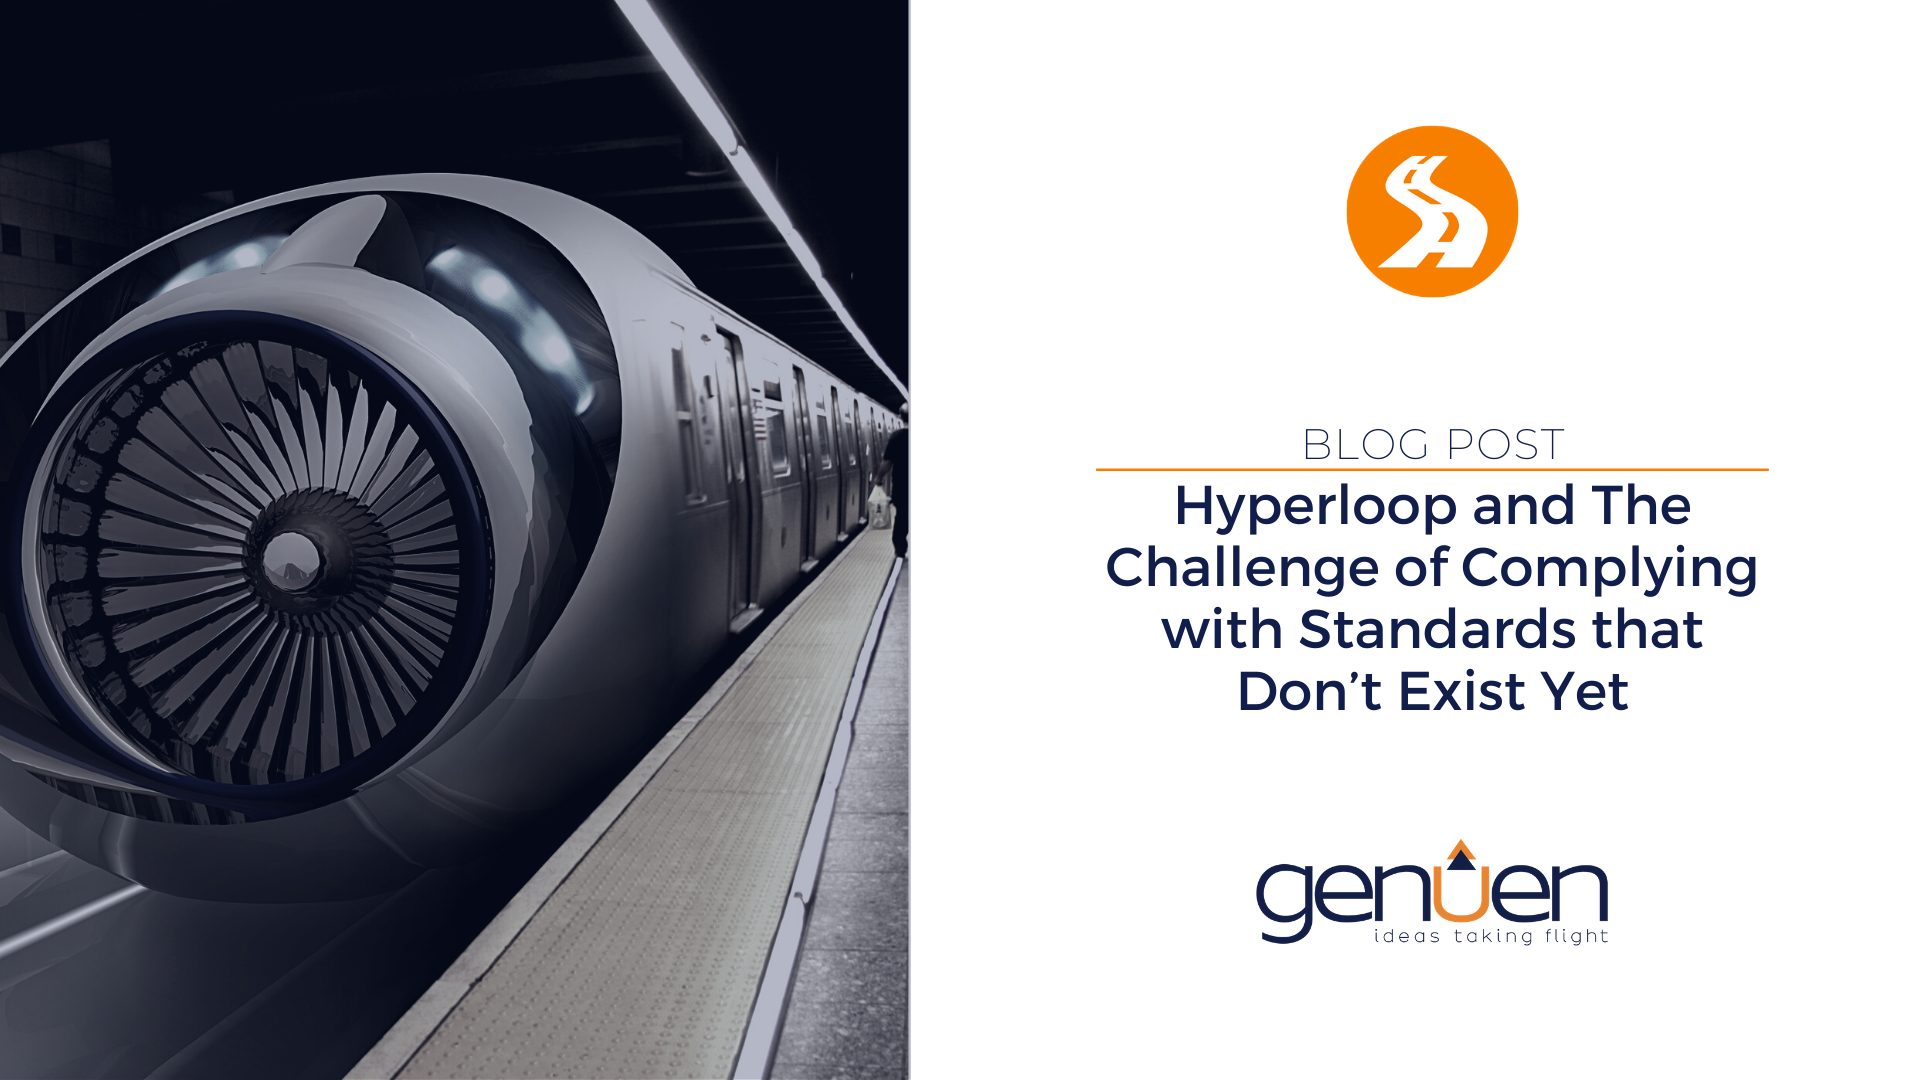 Hyperloop and The Challenge of Complying with Standards that Don't Exist Yet